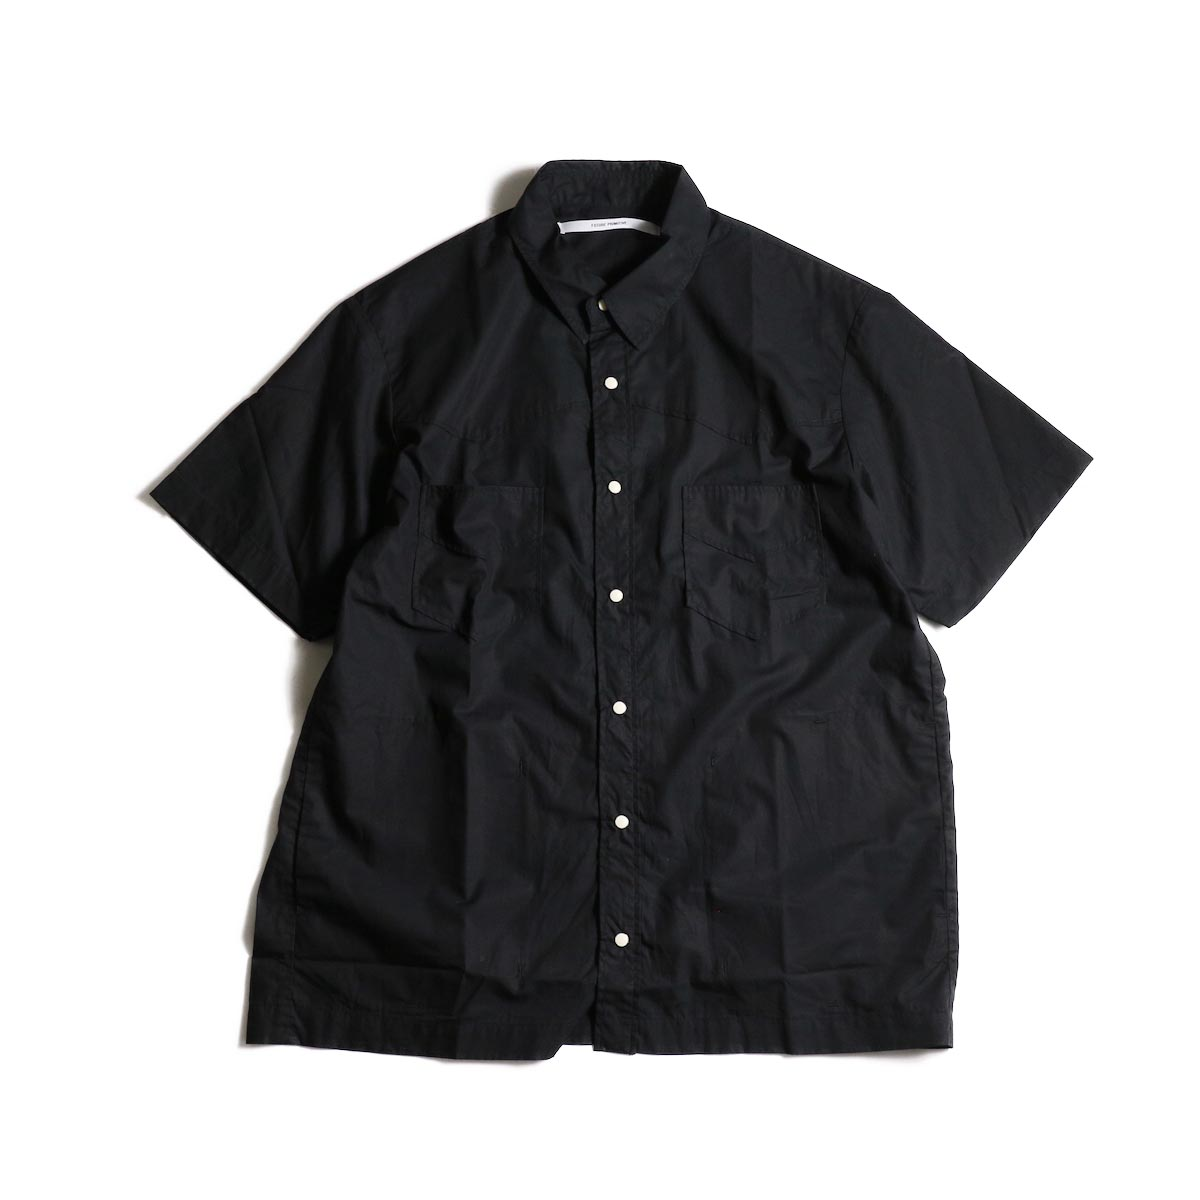 FUTURE PRIMITIVE / FP WESTERN SS SHIRT (Black)